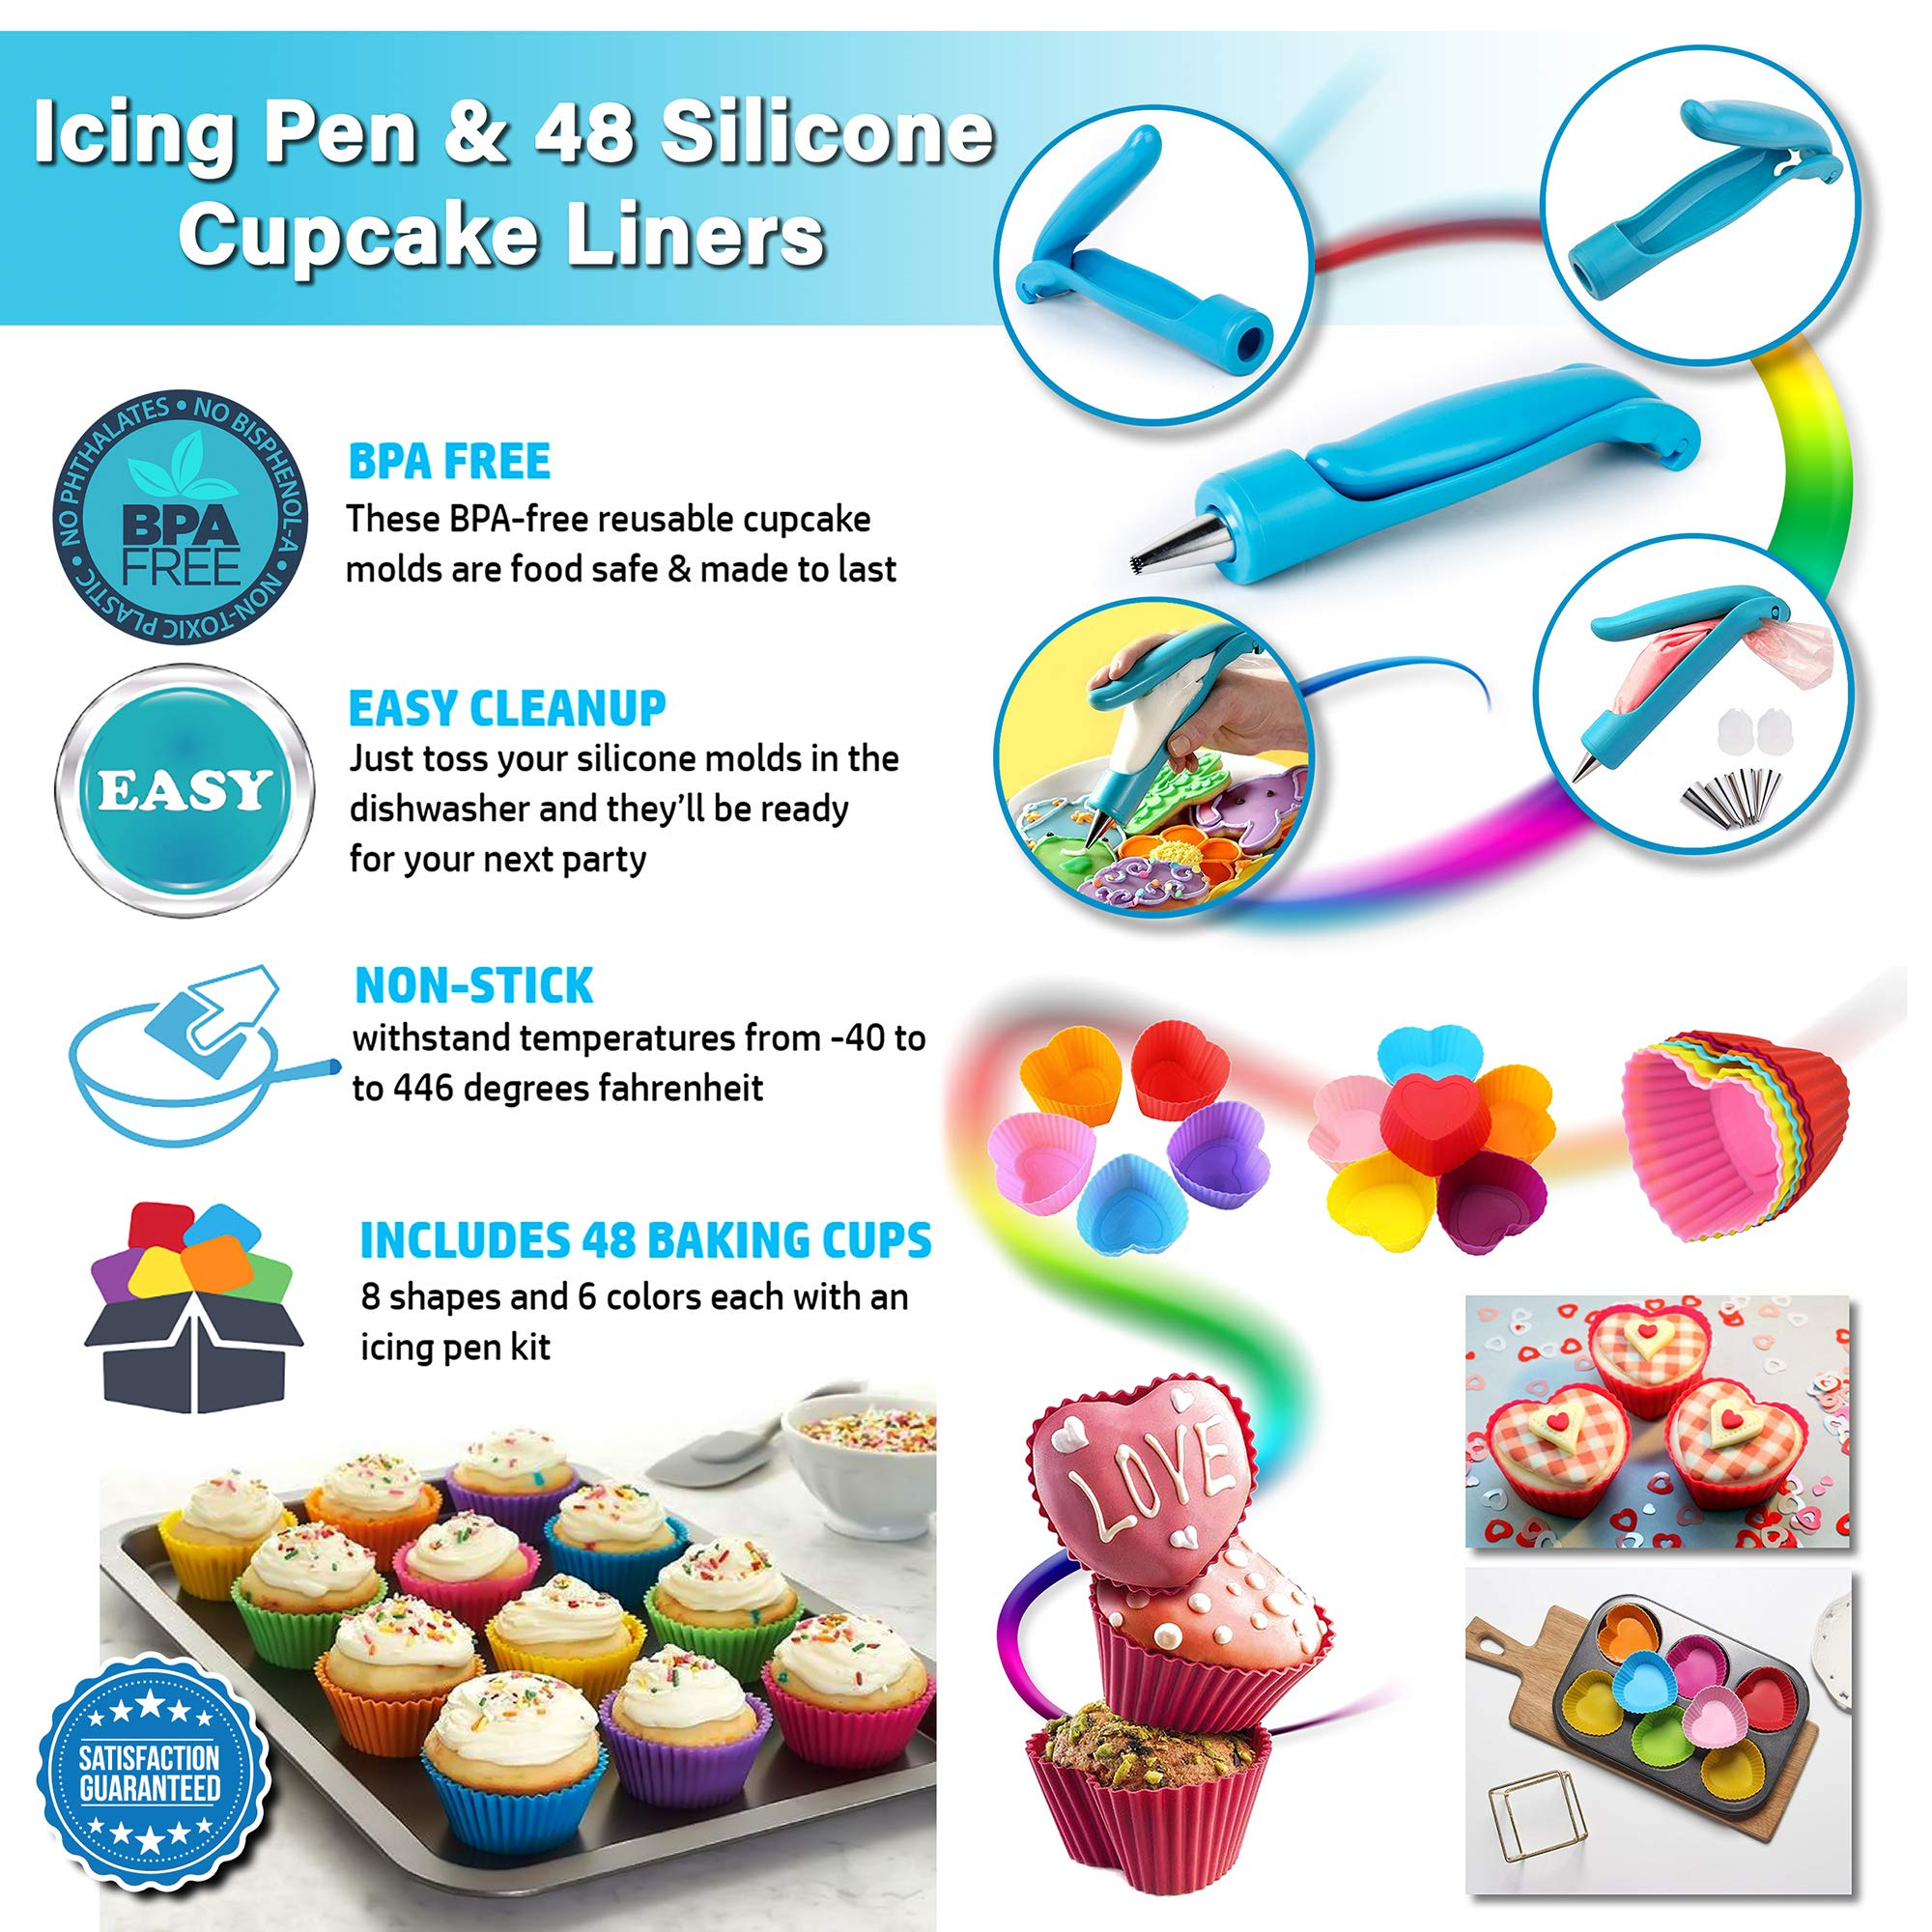 Cupcake Baking Cup Molds Bundle Easy Clean Pastry Liners 48 Nonstick Reusable Silicone Muffin Molds with Icing Pen Cupcake & Cake Decorating Pen Set by Kitchen Krush (Image #4)